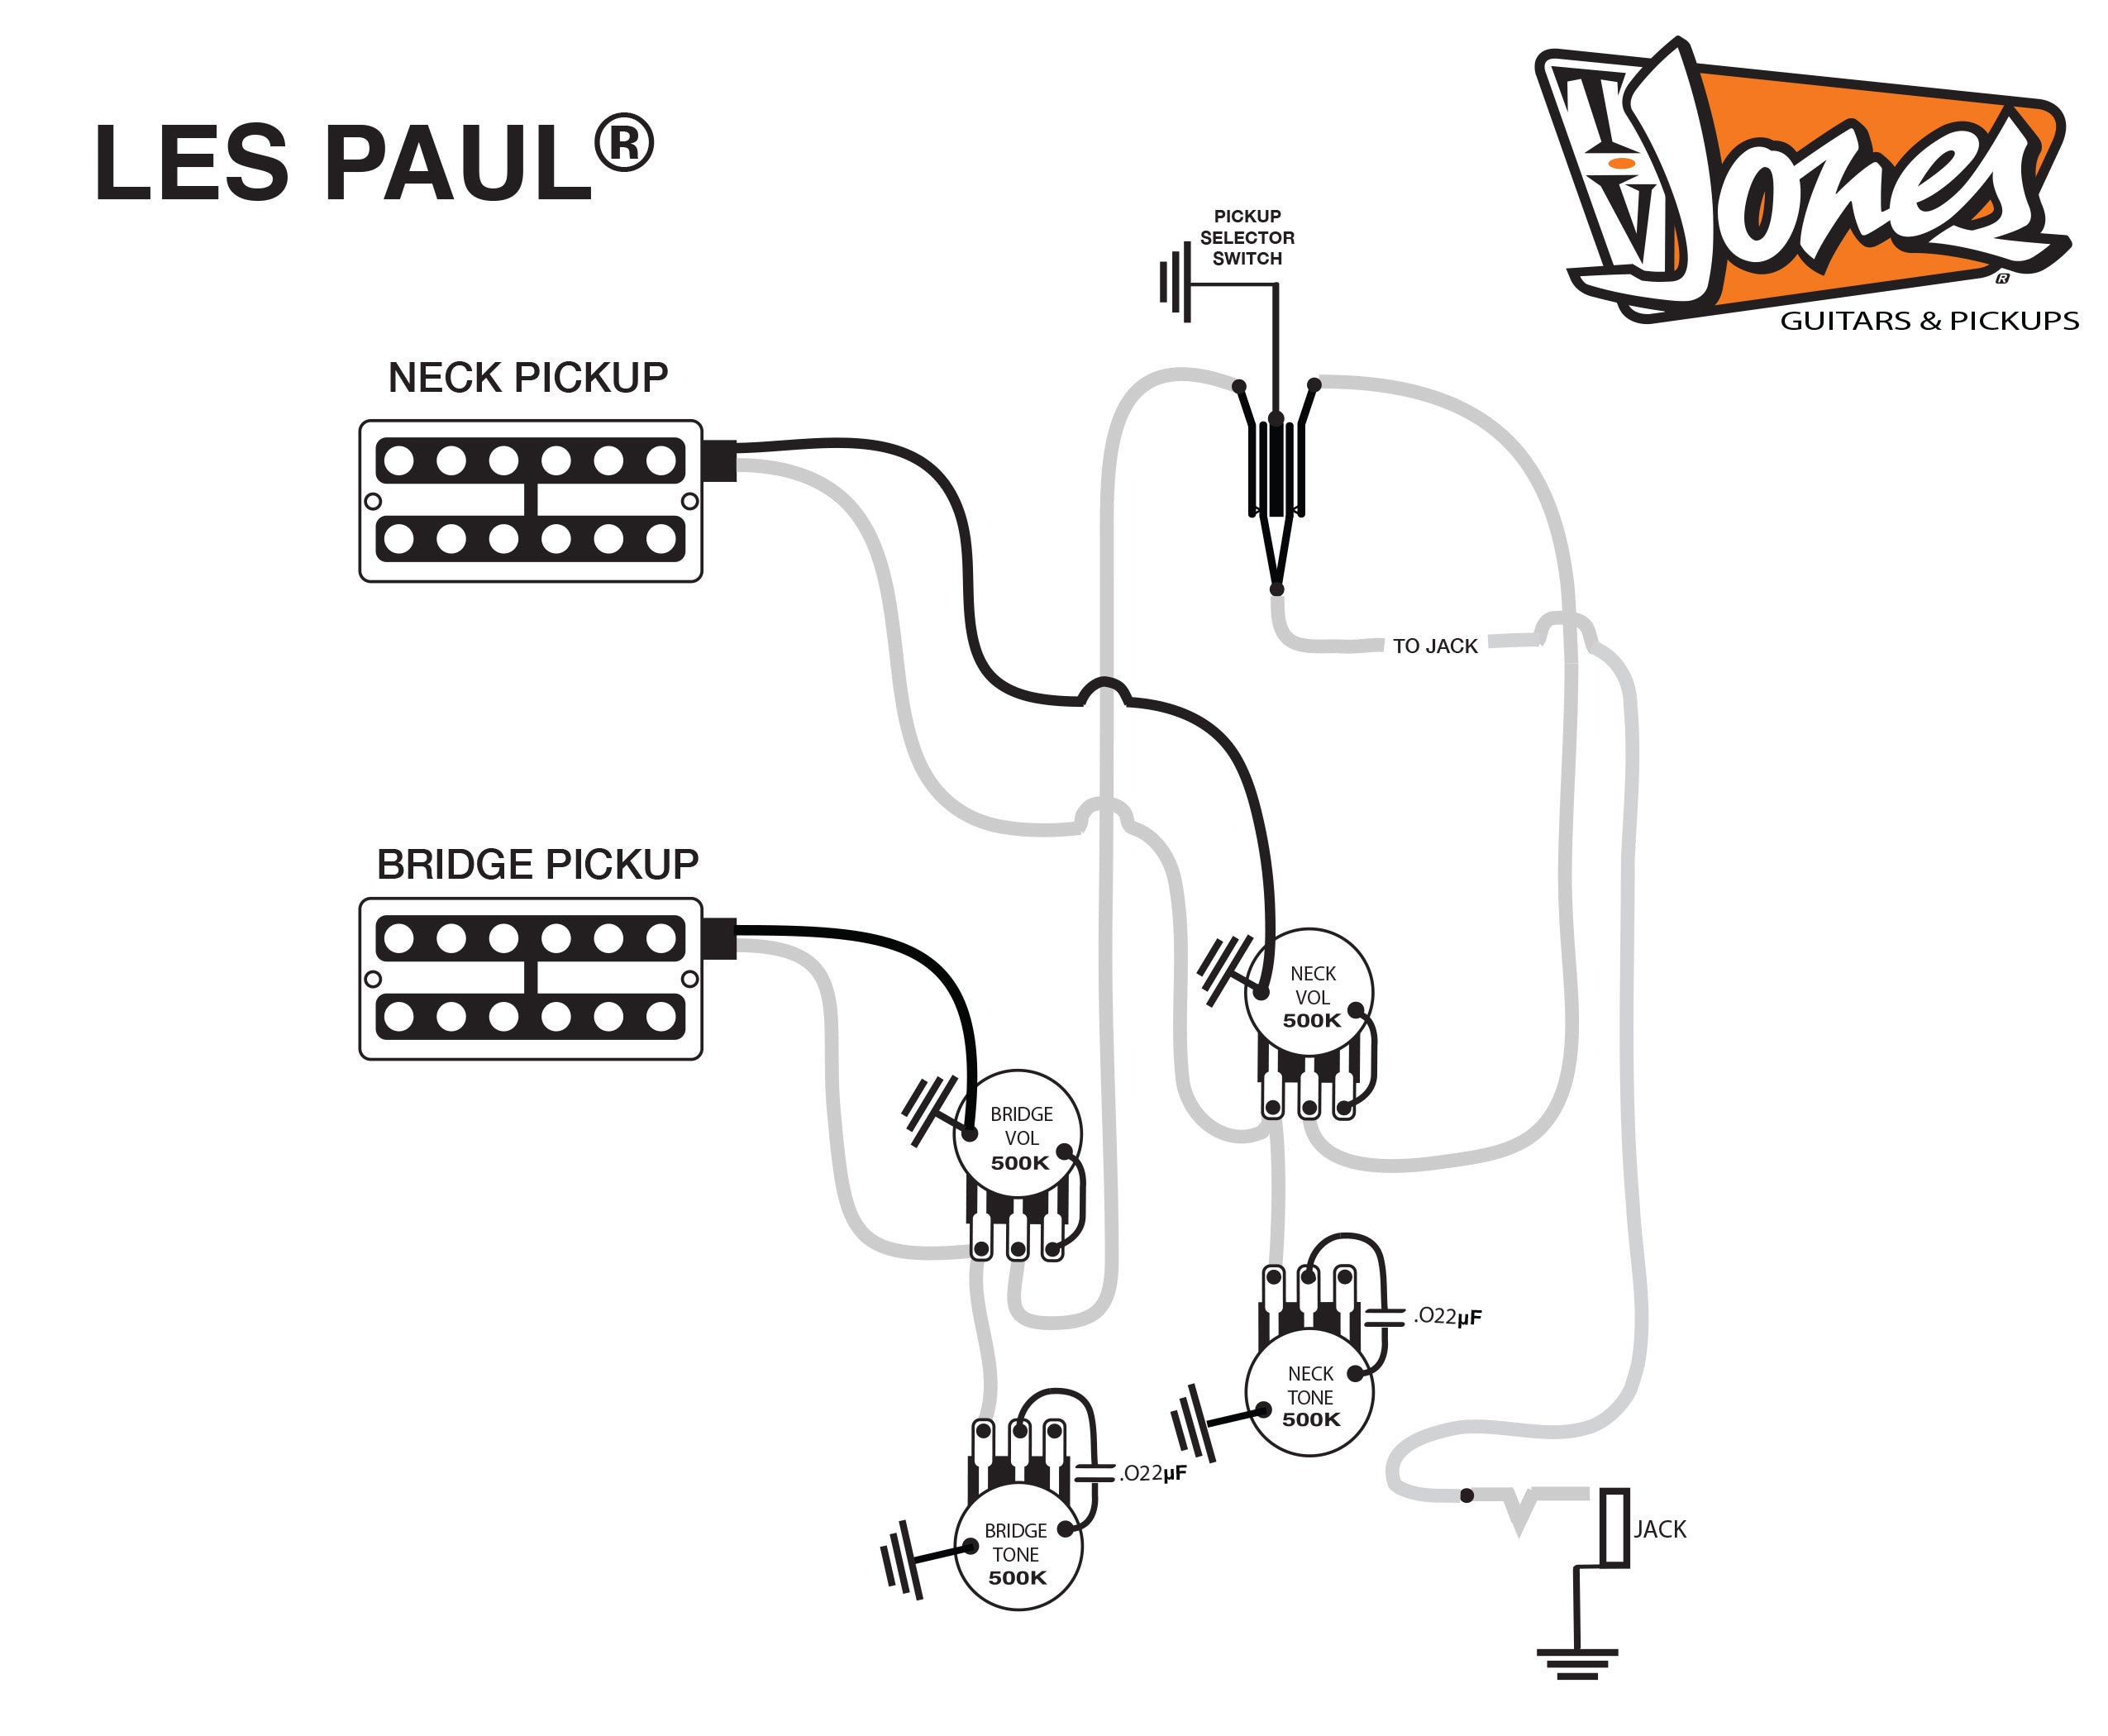 john mayer strat wiring diagram wrg 1635  tv jones wiring diagram  wrg 1635  tv jones wiring diagram